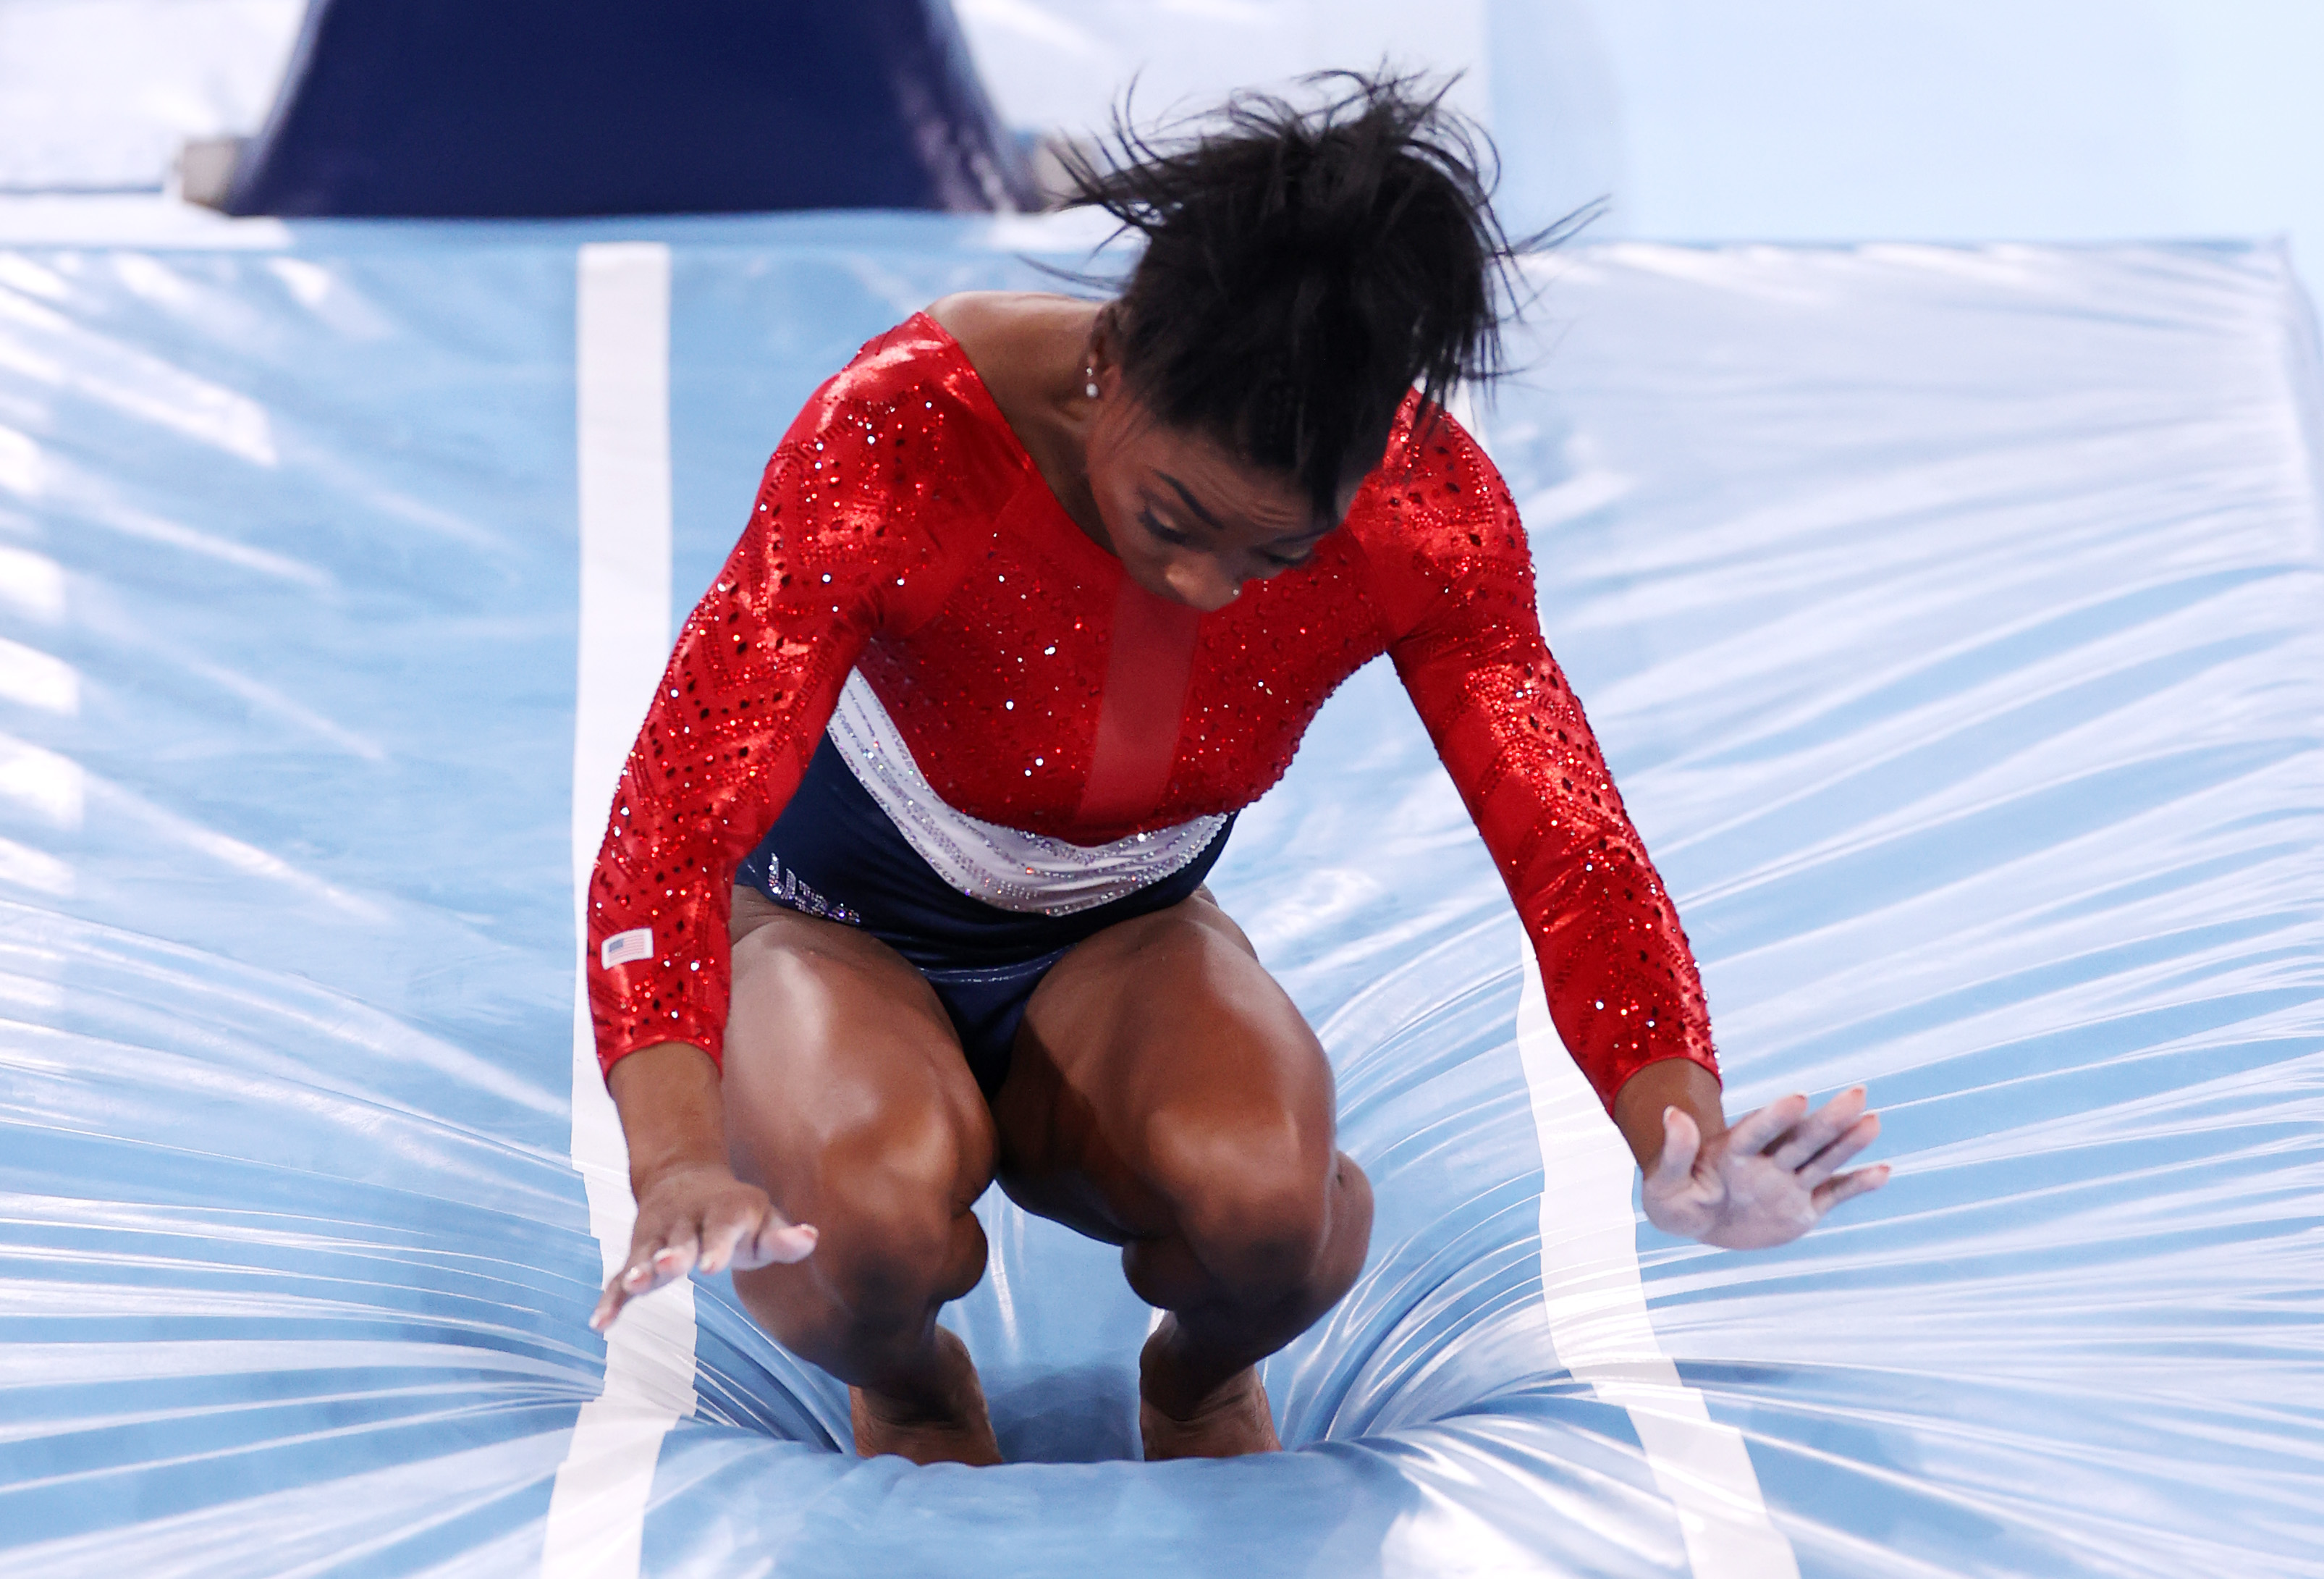 Simone Biles stumbles upon landing after competing in vault on July 27.